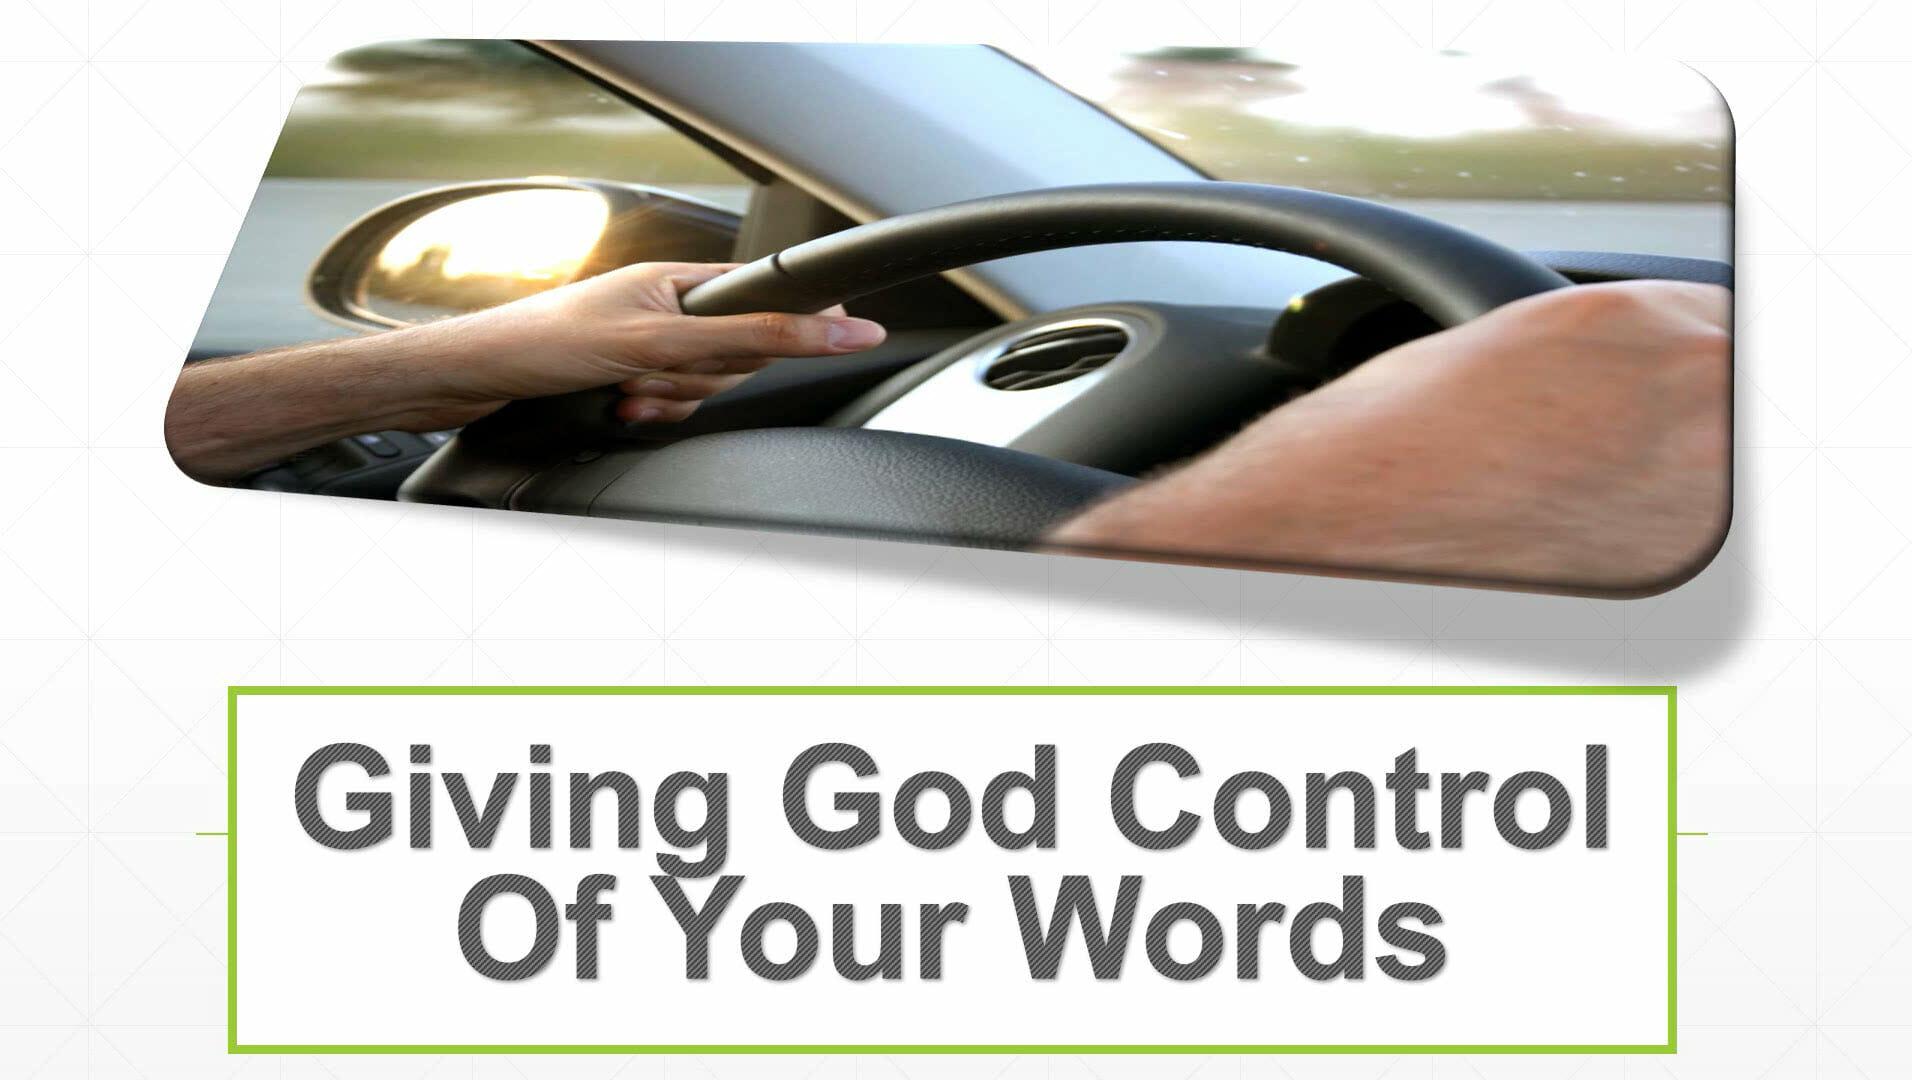 Giving God Control Of Your Words